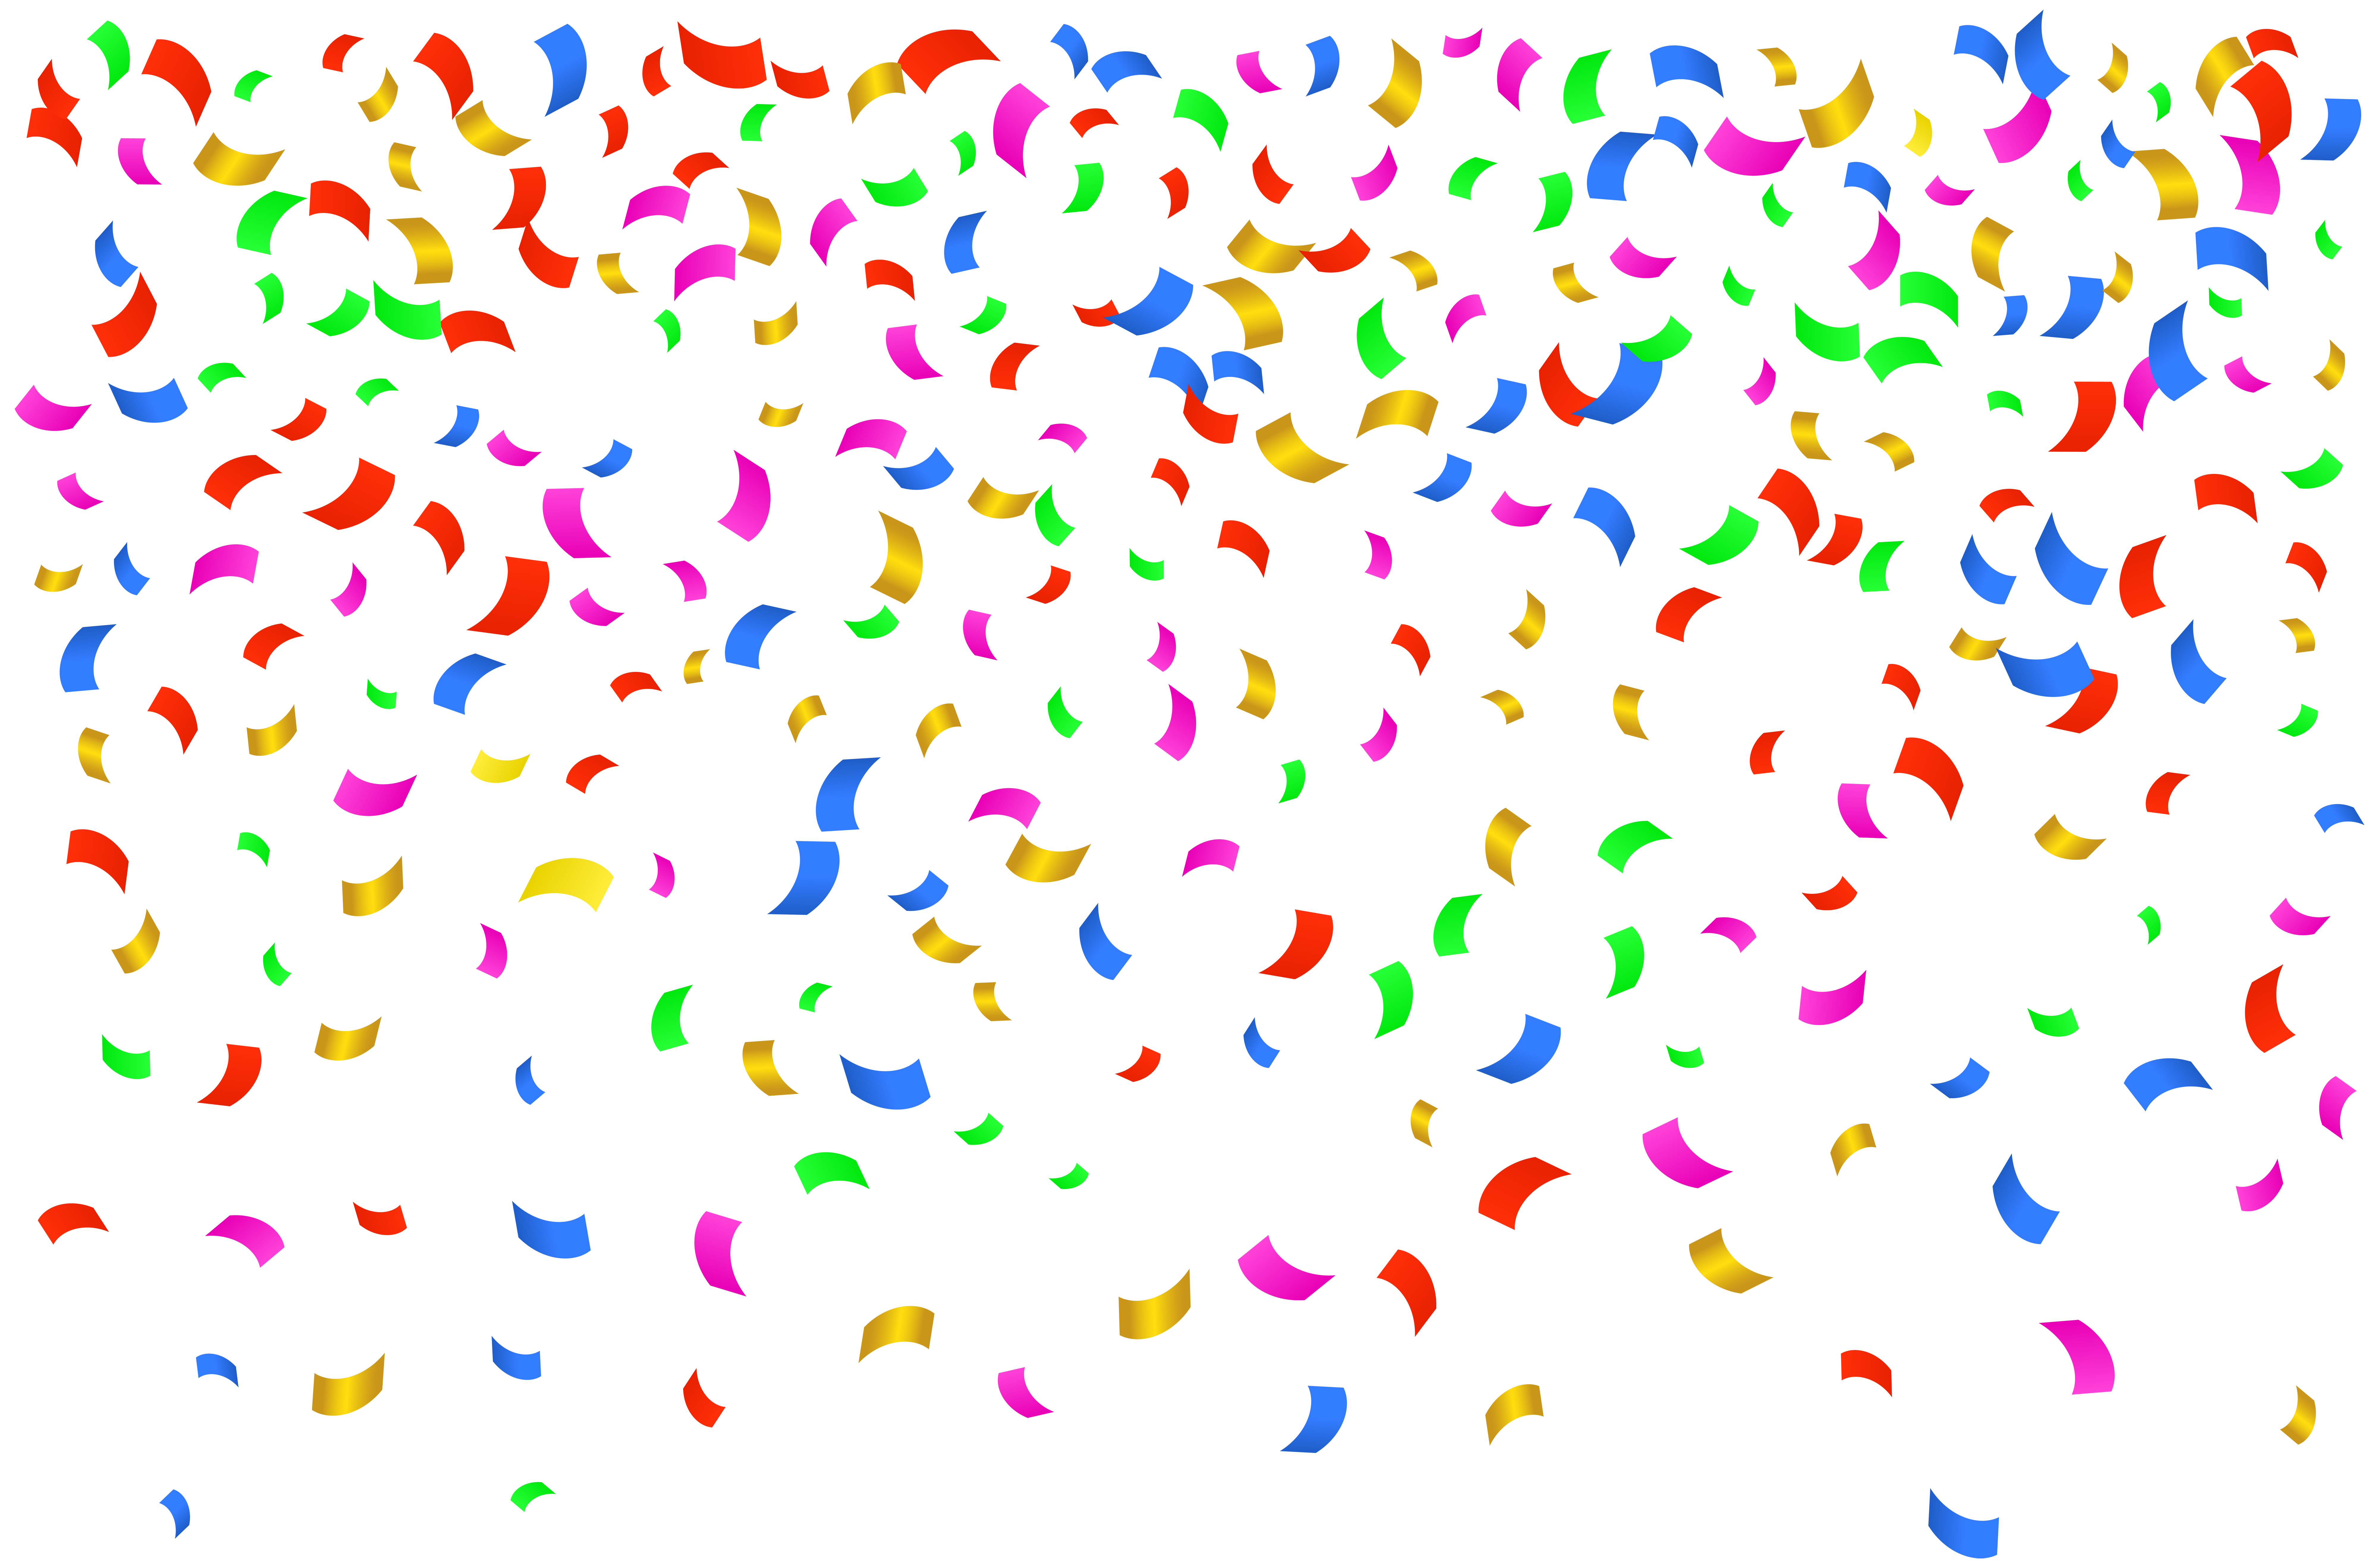 Happy birthday confetti png. Download free transparent image